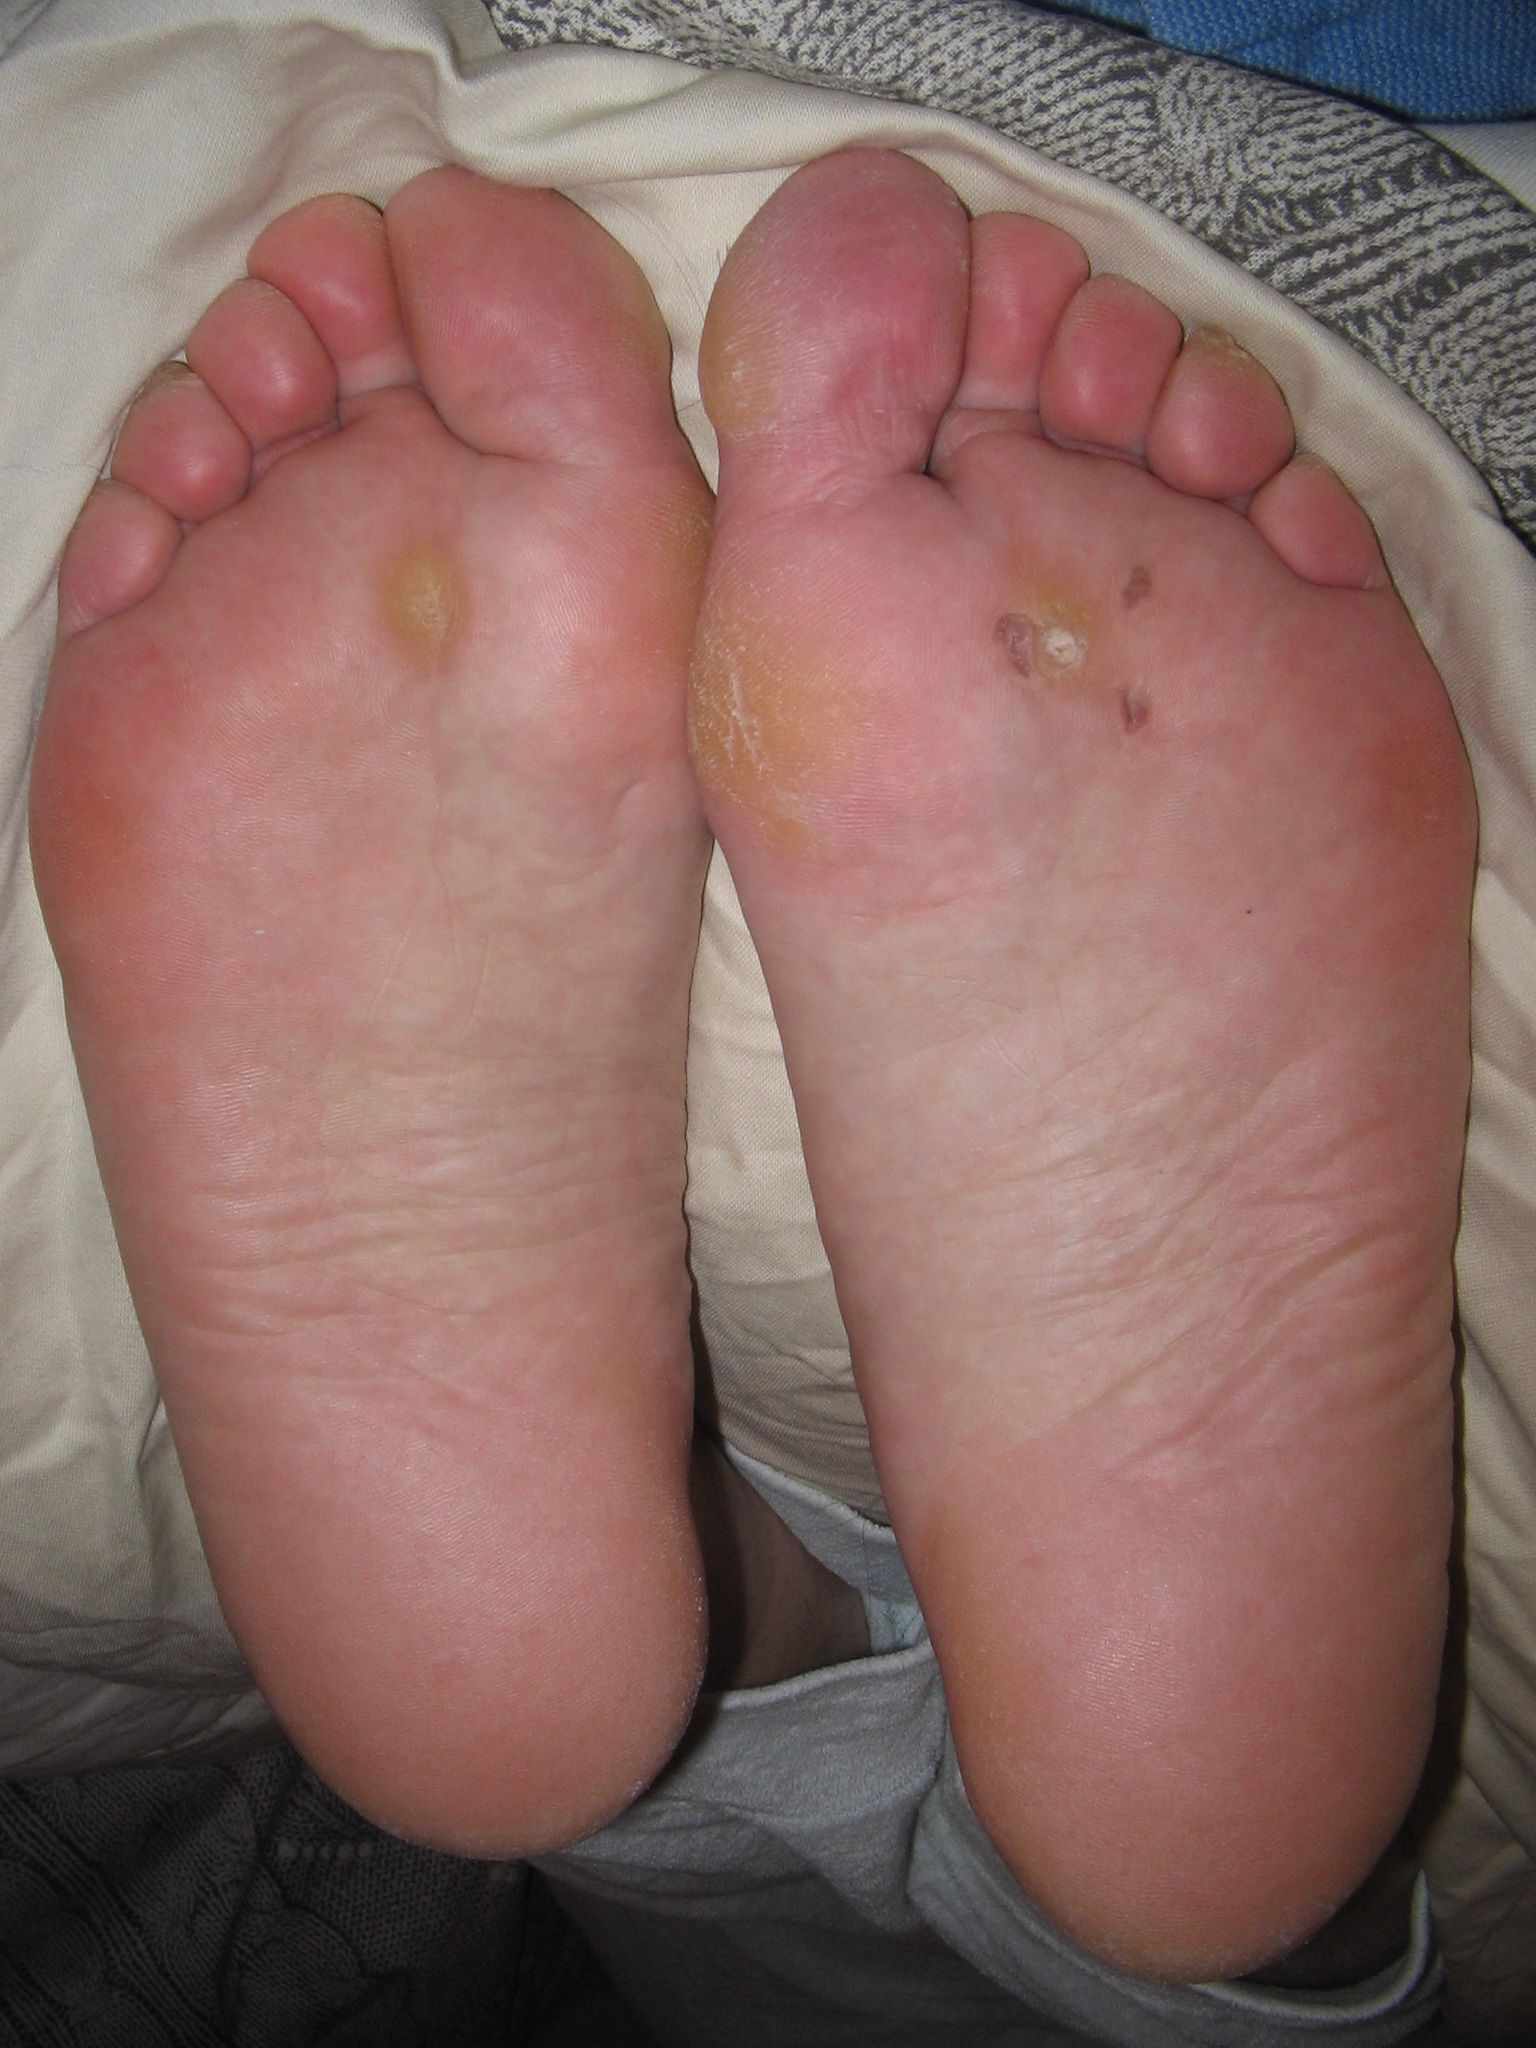 dry cracked and callused feet to repair with foot peel mask